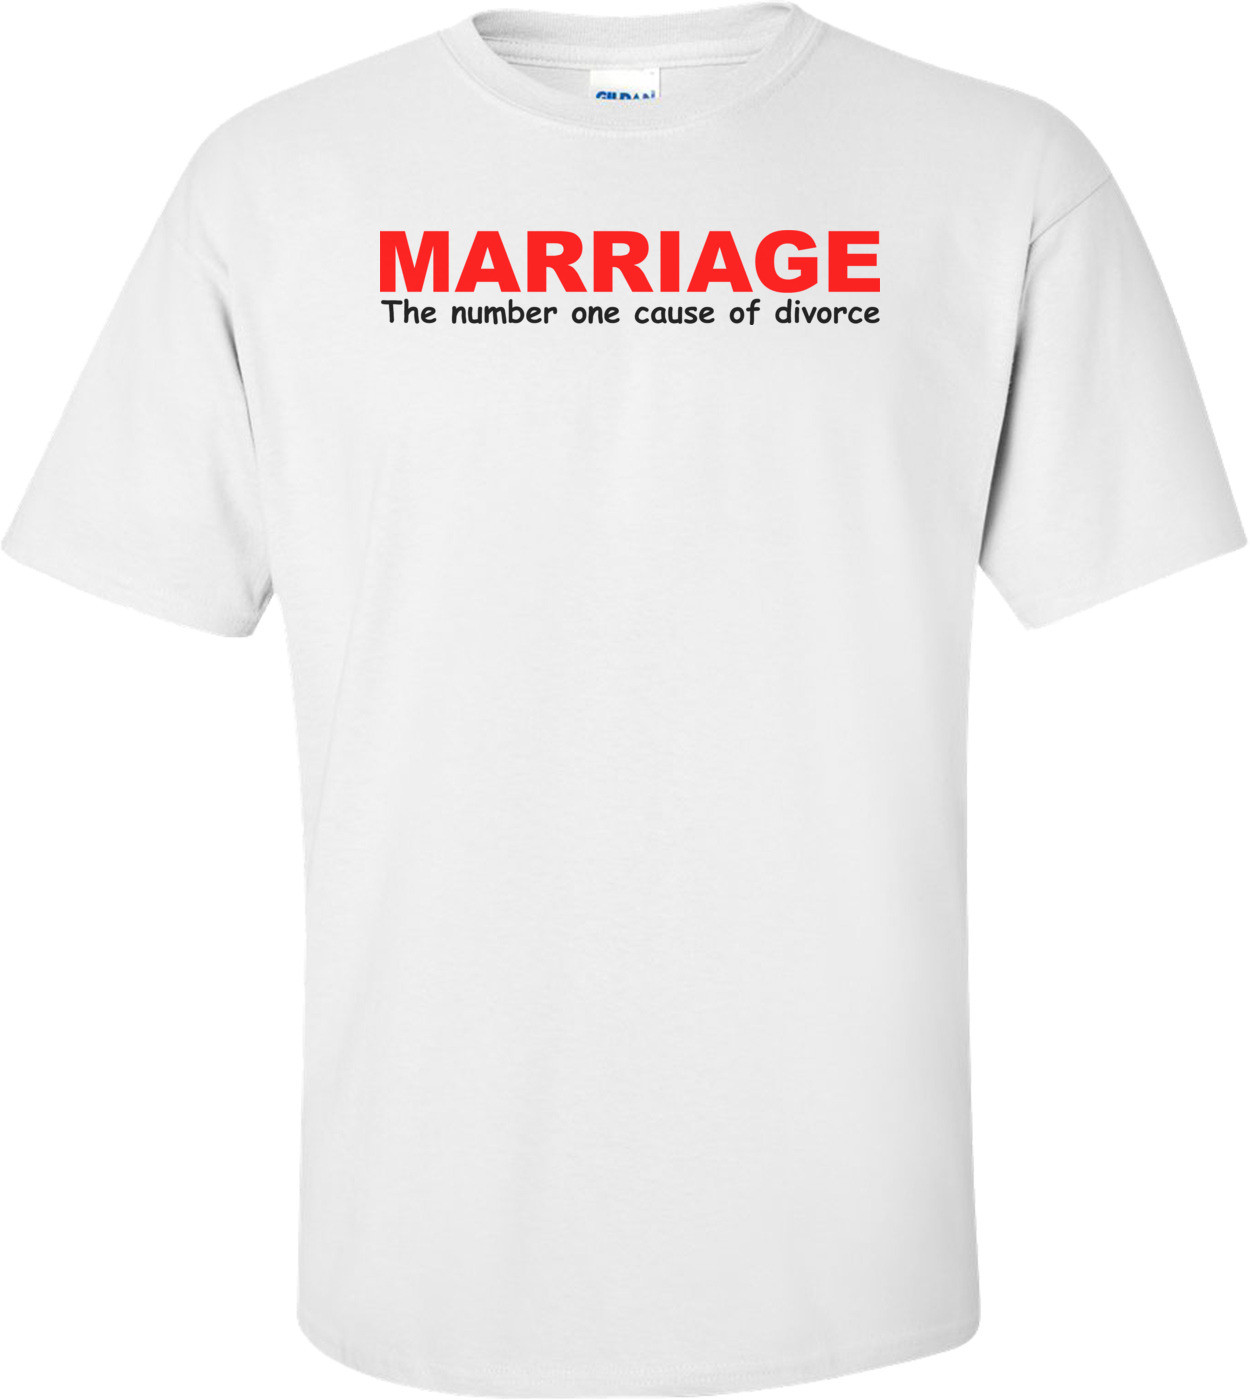 Marriage The Number One Cause Of Divorce Funny Shirt